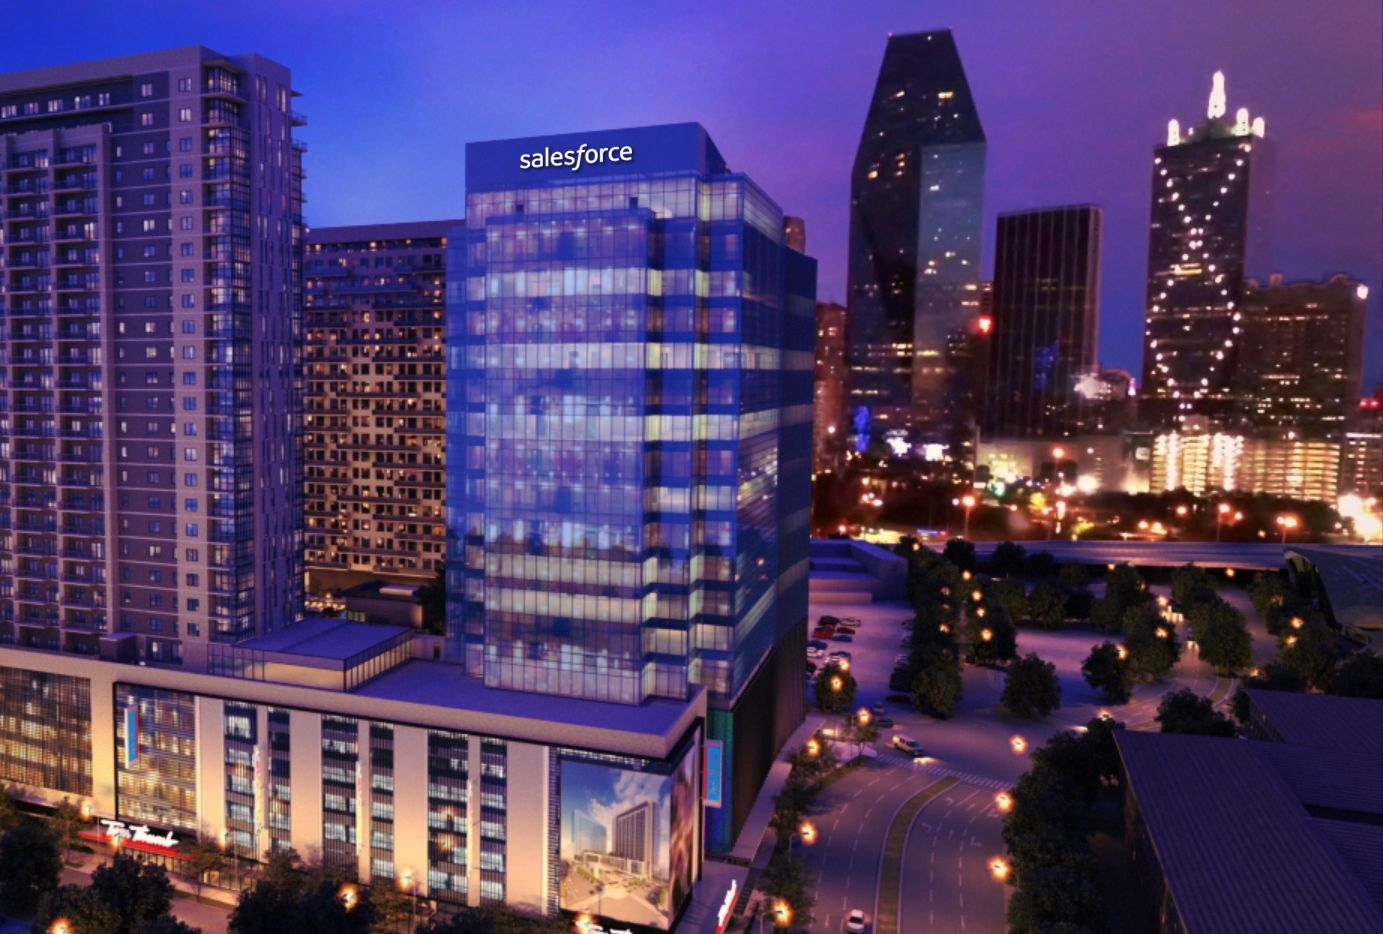 California-based Salesforce is consolidating its Dallas operations in the new Union office tower in Uptown.